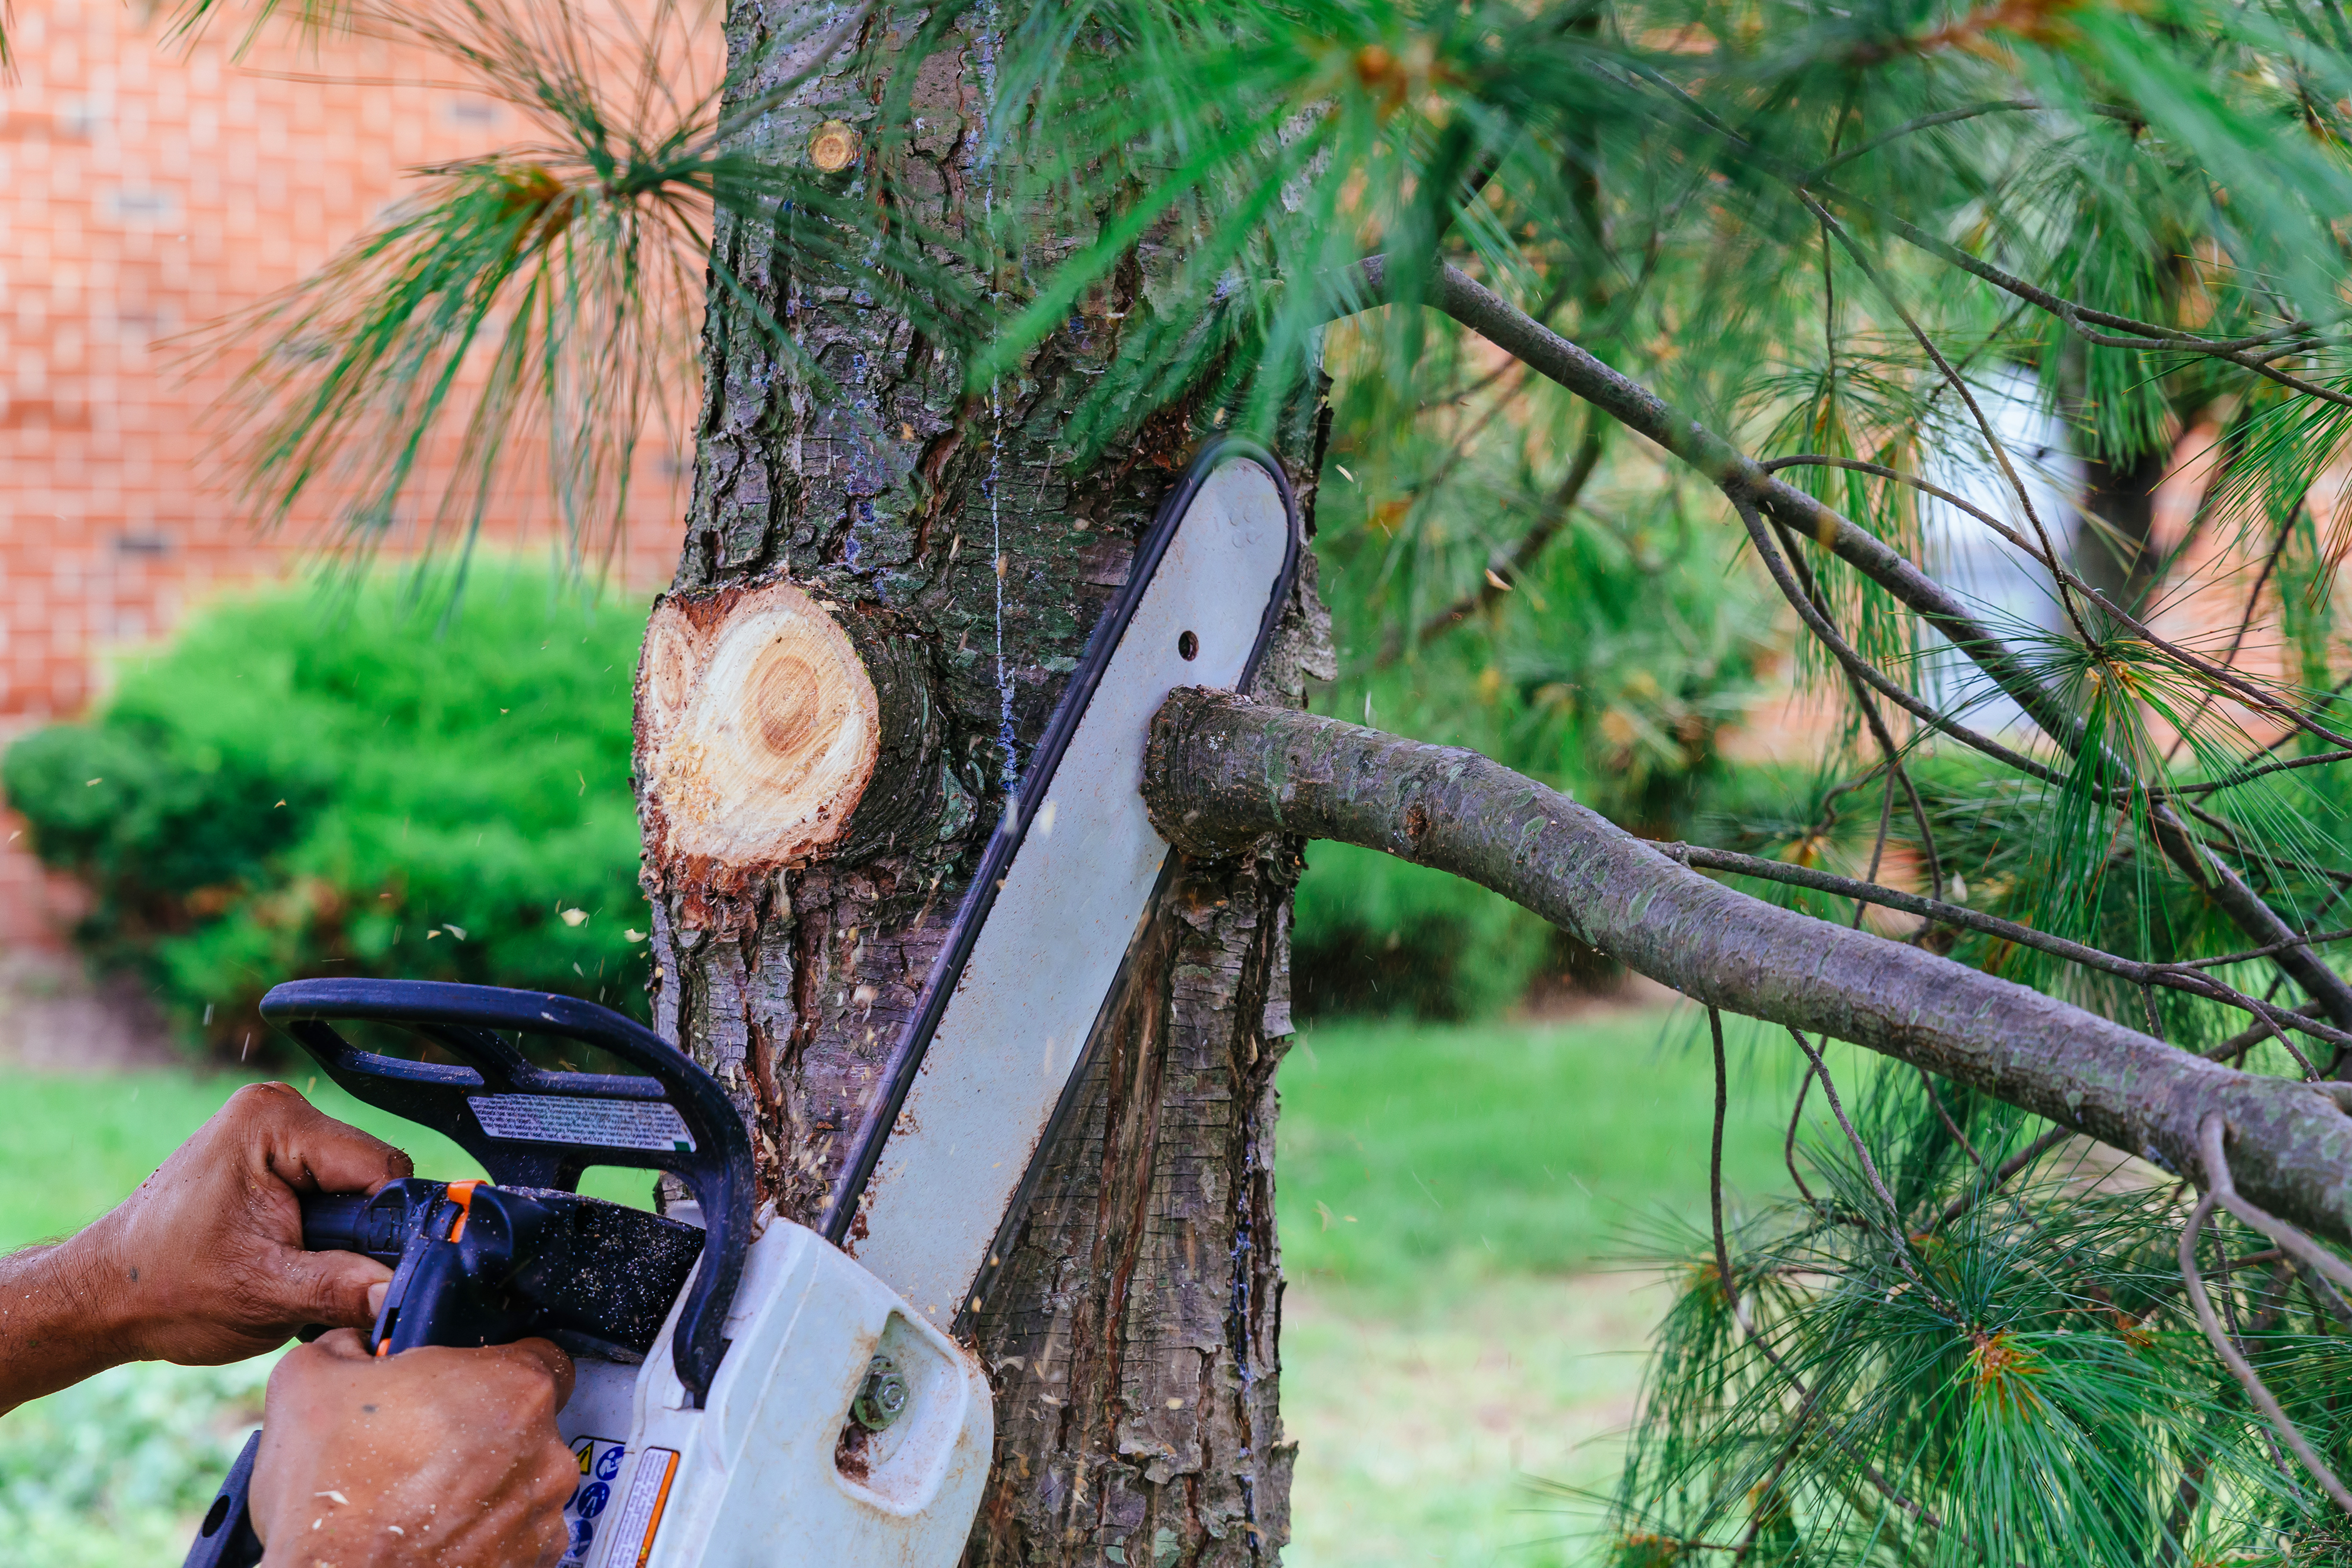 A little off the top: The importance of pruning your trees